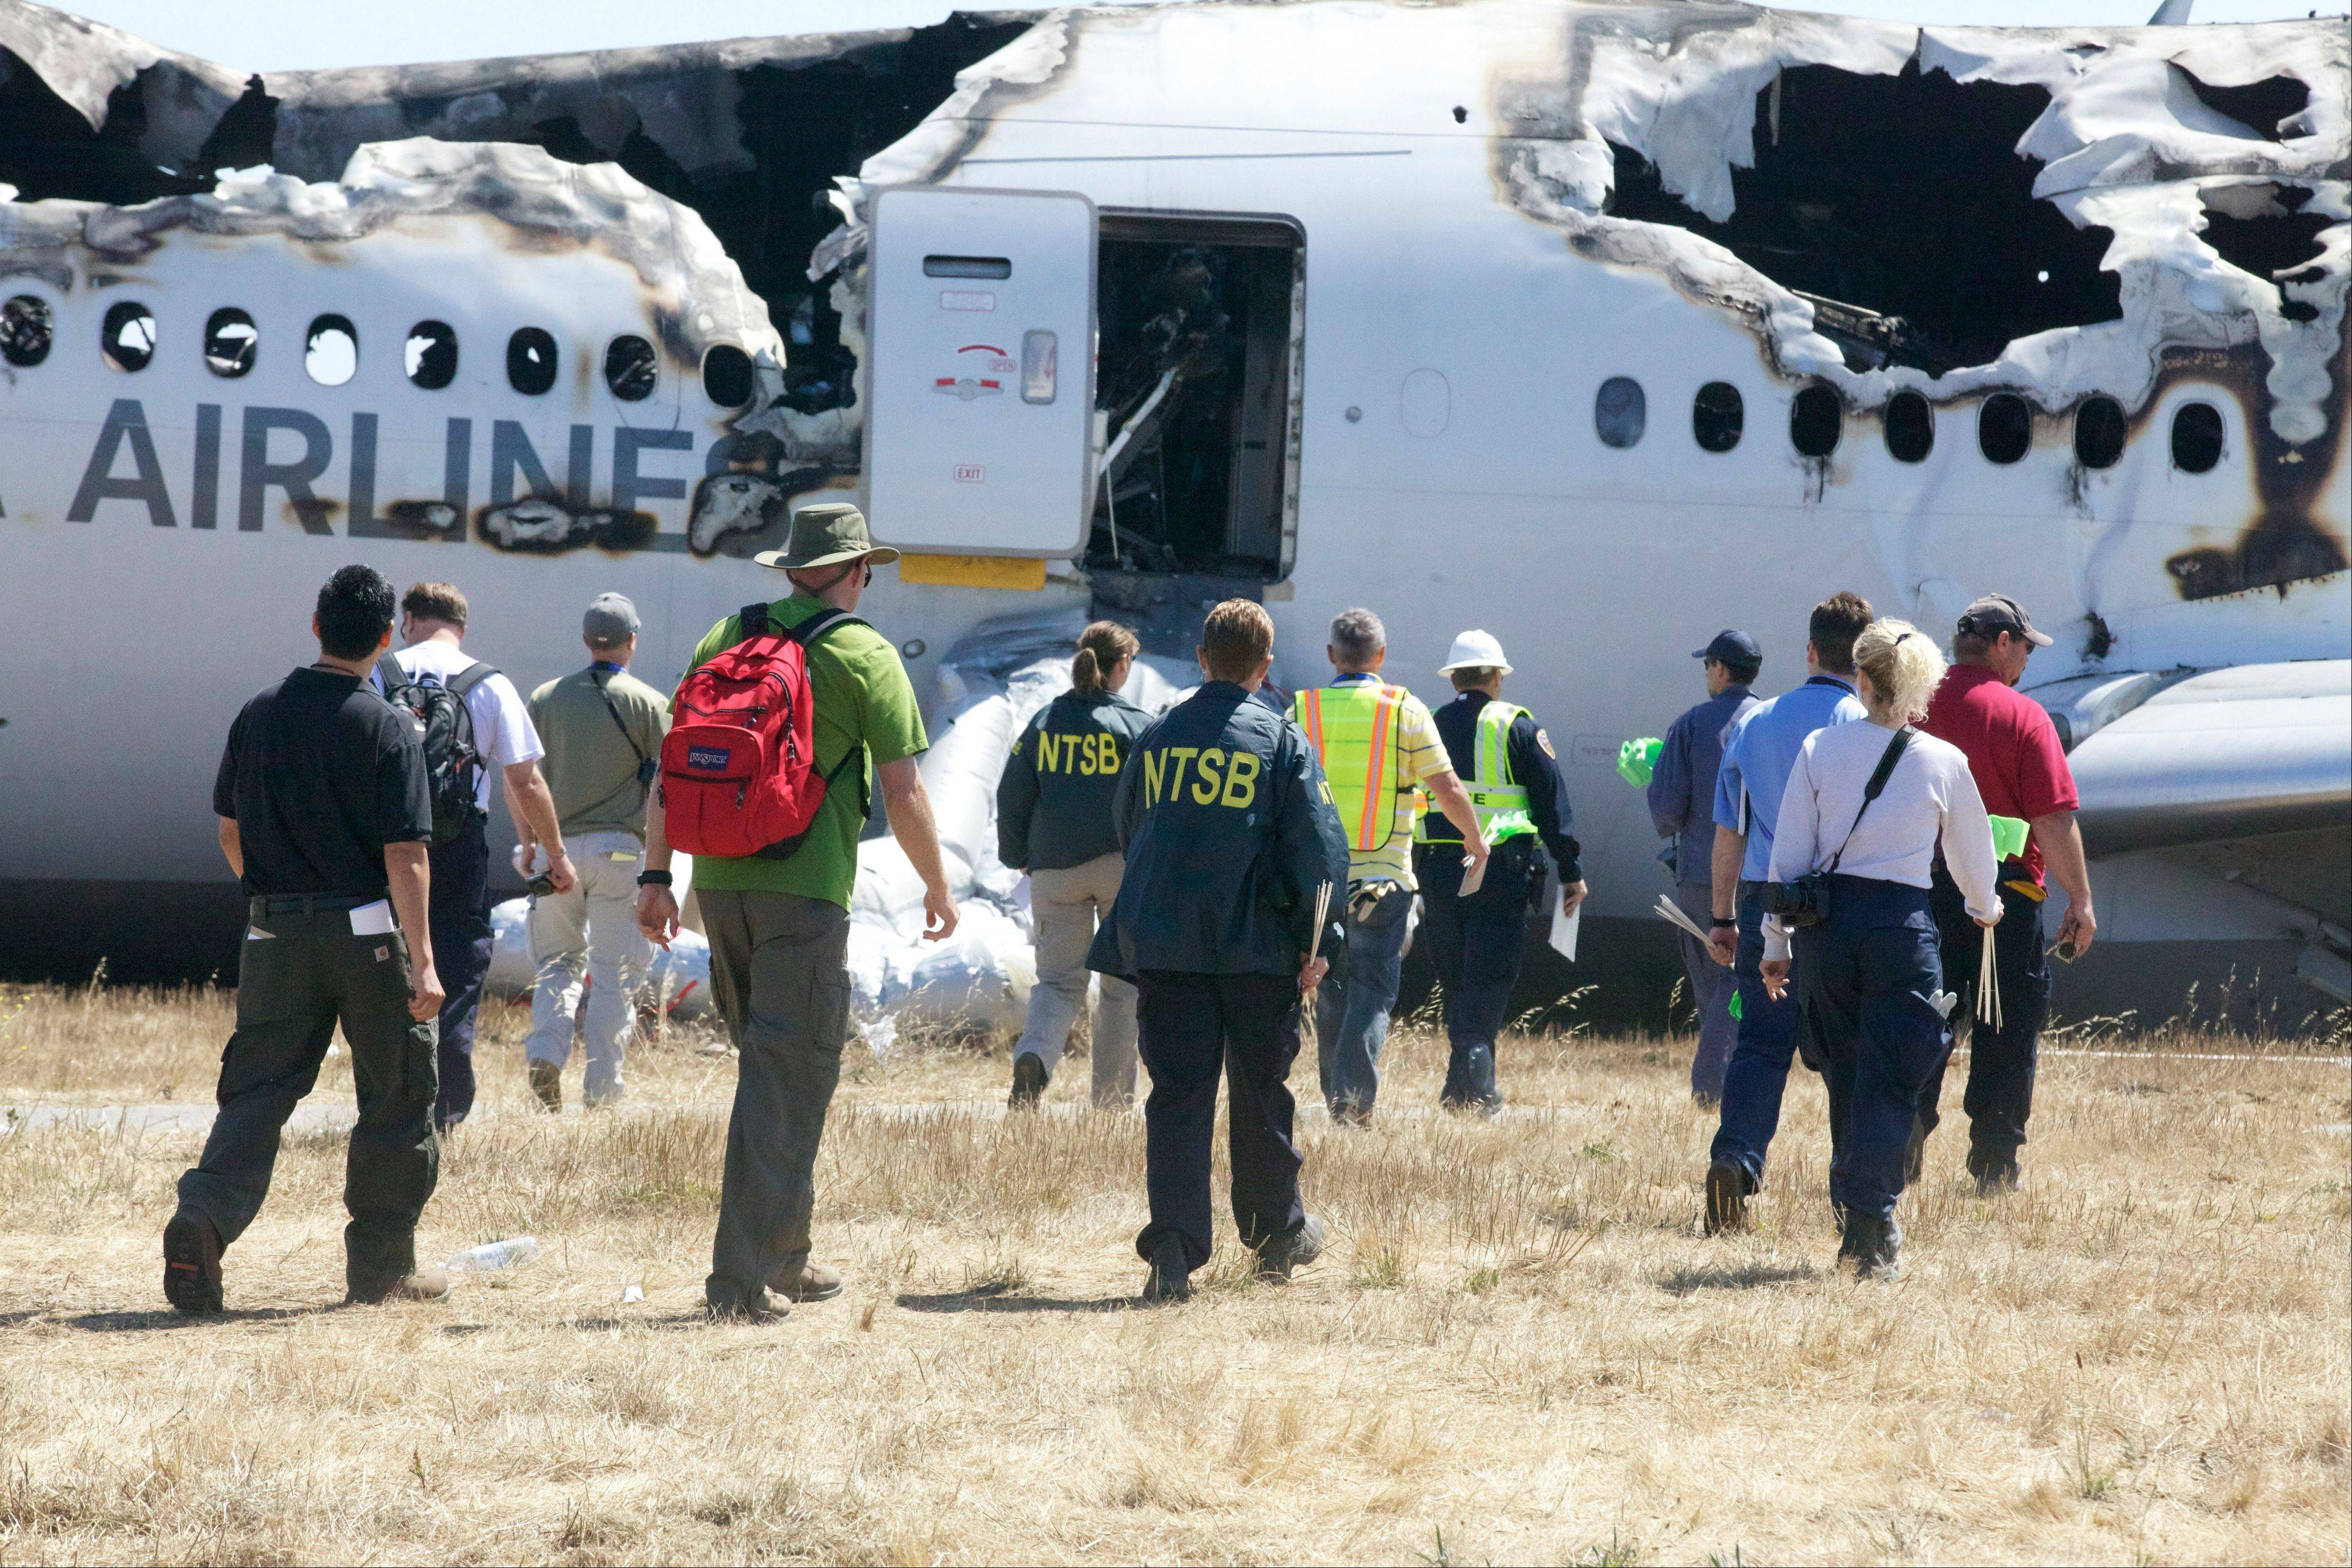 Investigators examine the wreckage at the scene of the Asiana Airline crash at San Francisco International Airport.